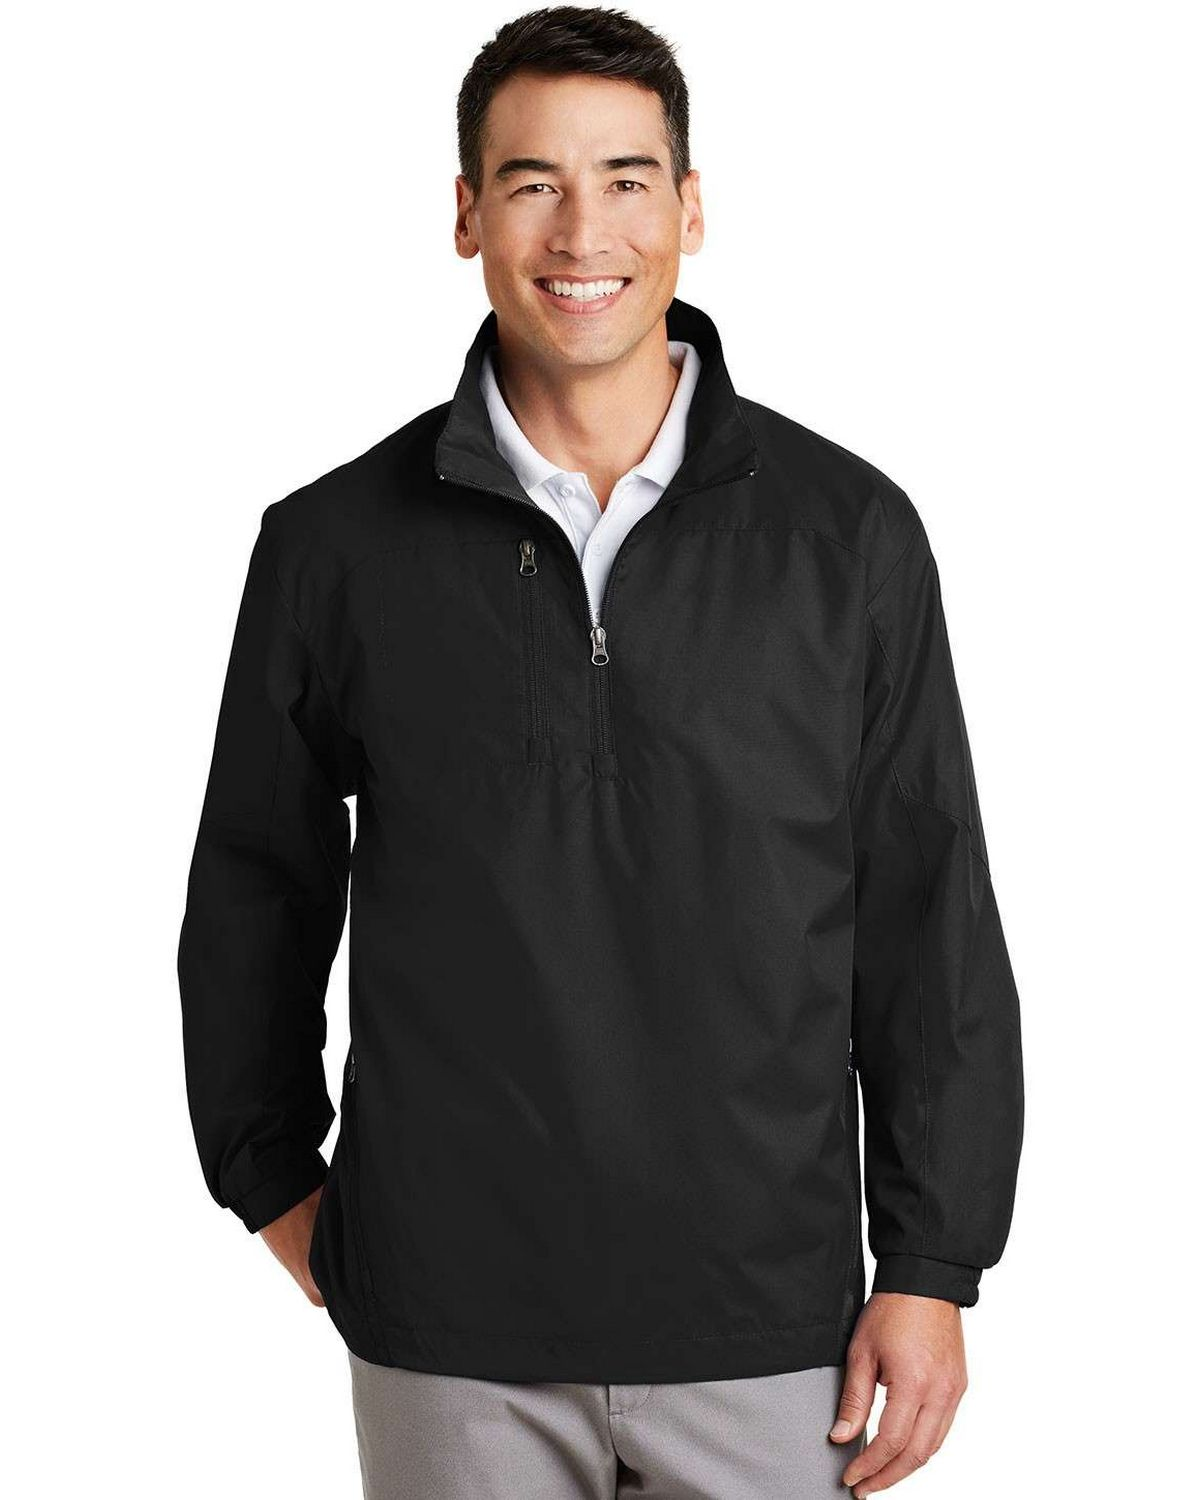 Port Authority J703 1/2-Zip Wind Jacket